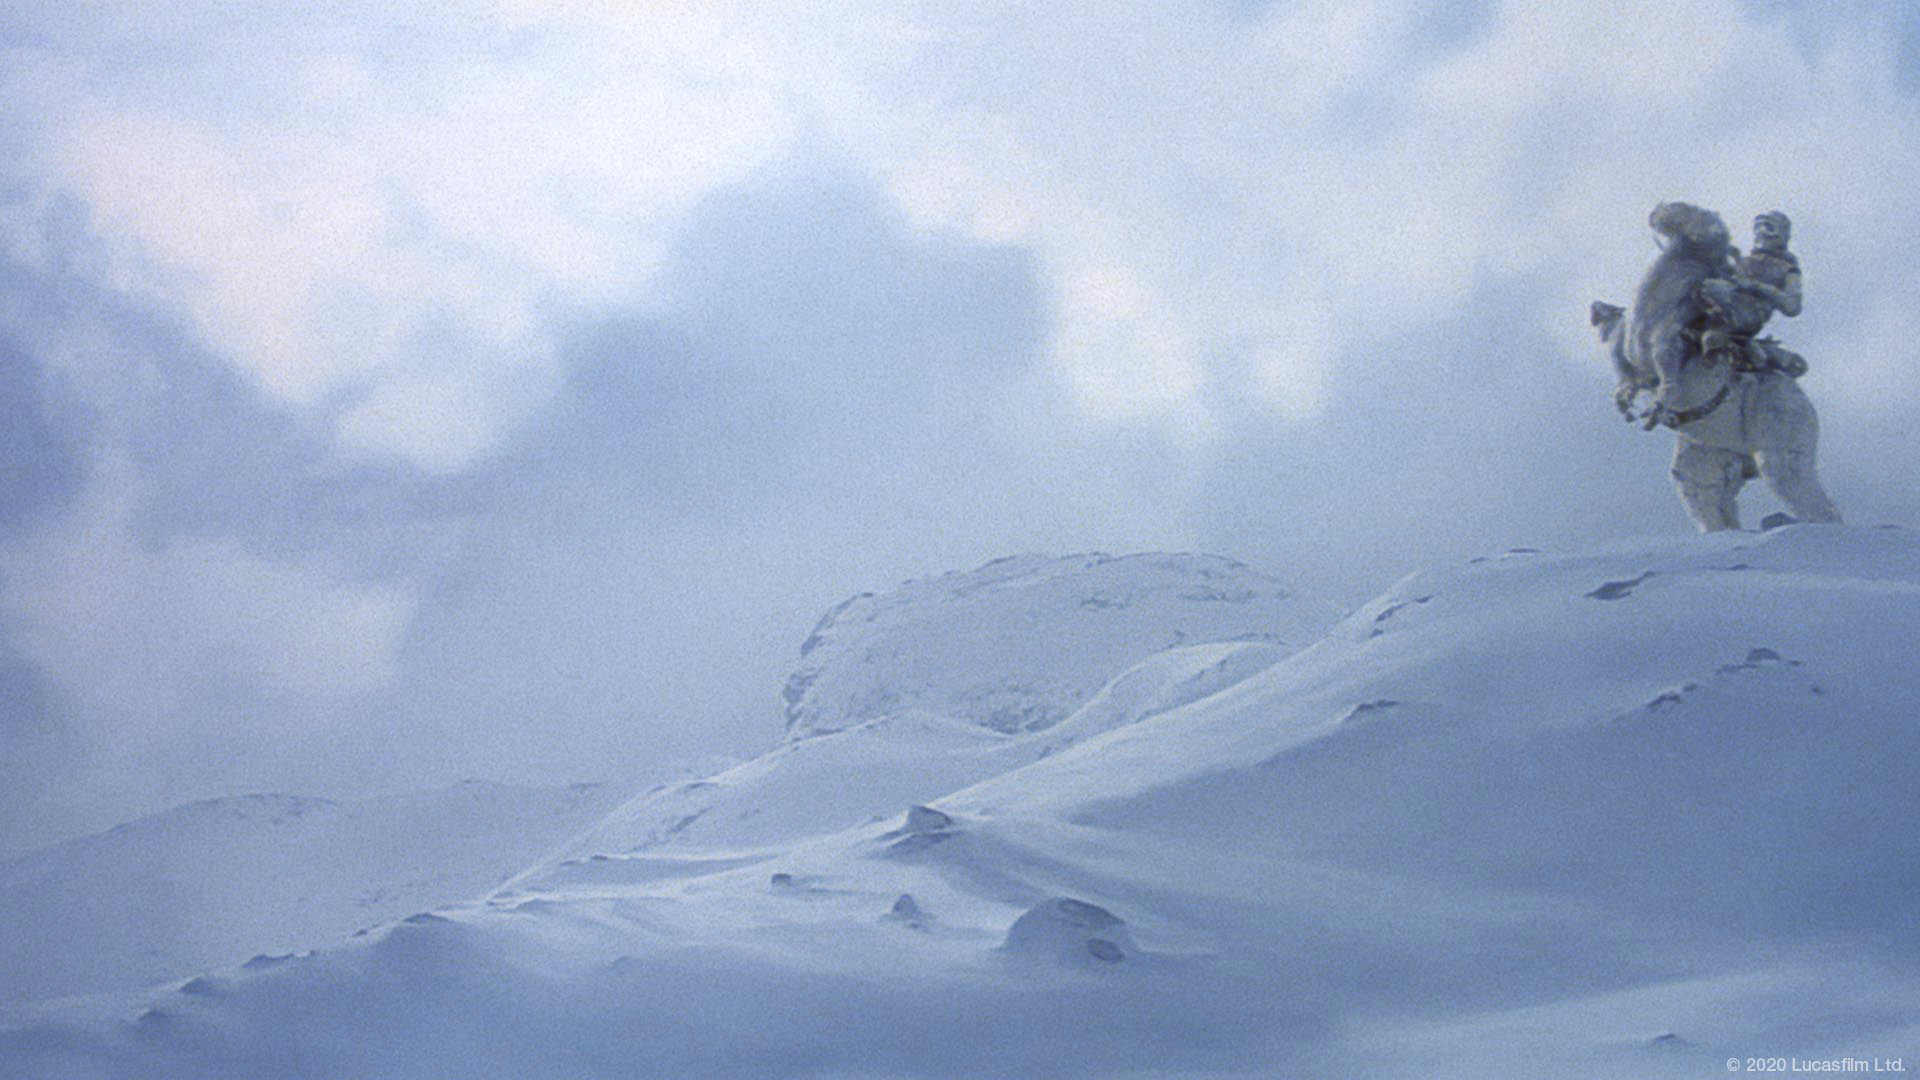 Star Wars virtual background: Hoth